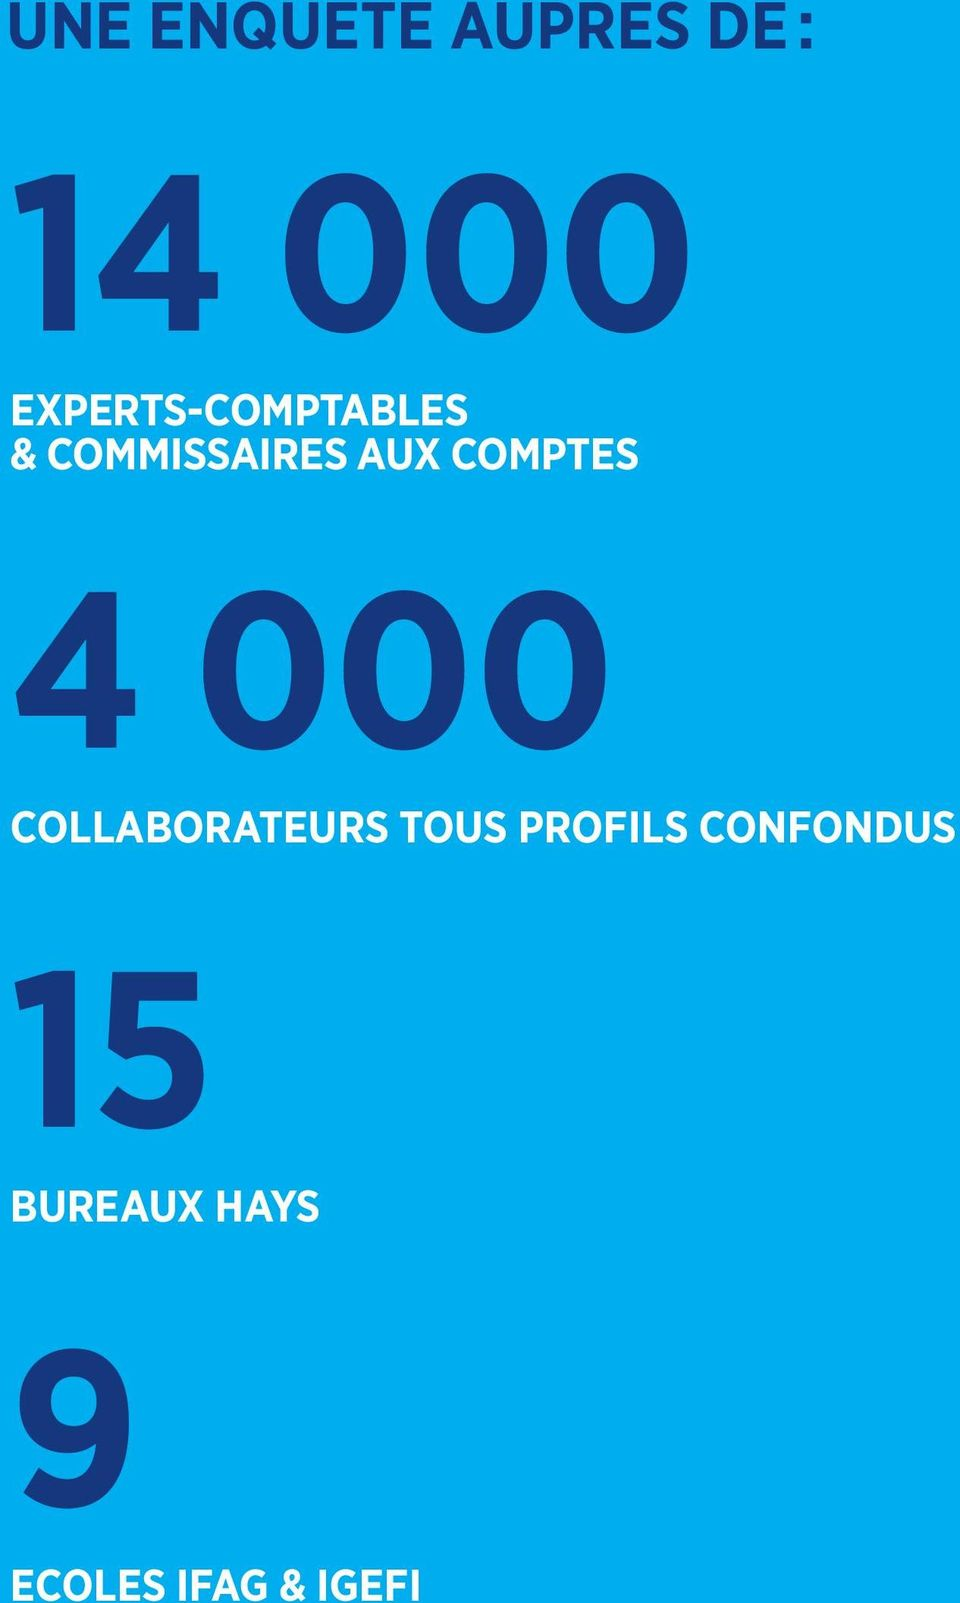 COMPTES 4 000 COLLABORATEURS TOUS